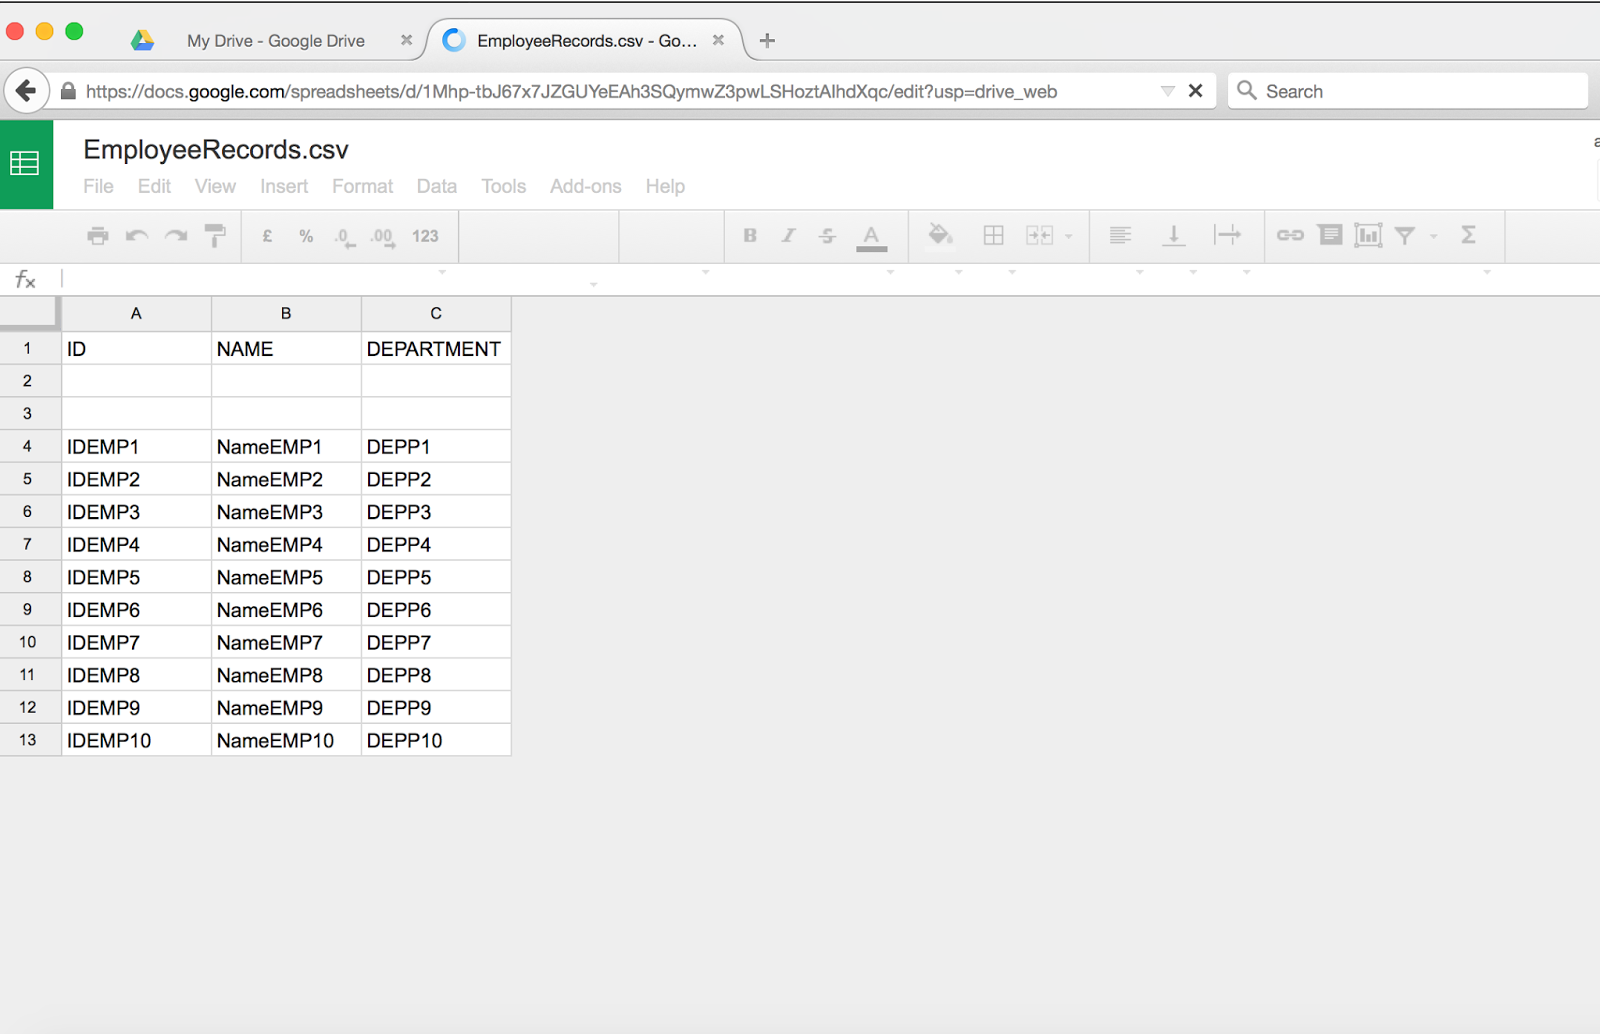 CSV file created programmatically and then uploaded to Google drive and shown in Spreadsheet